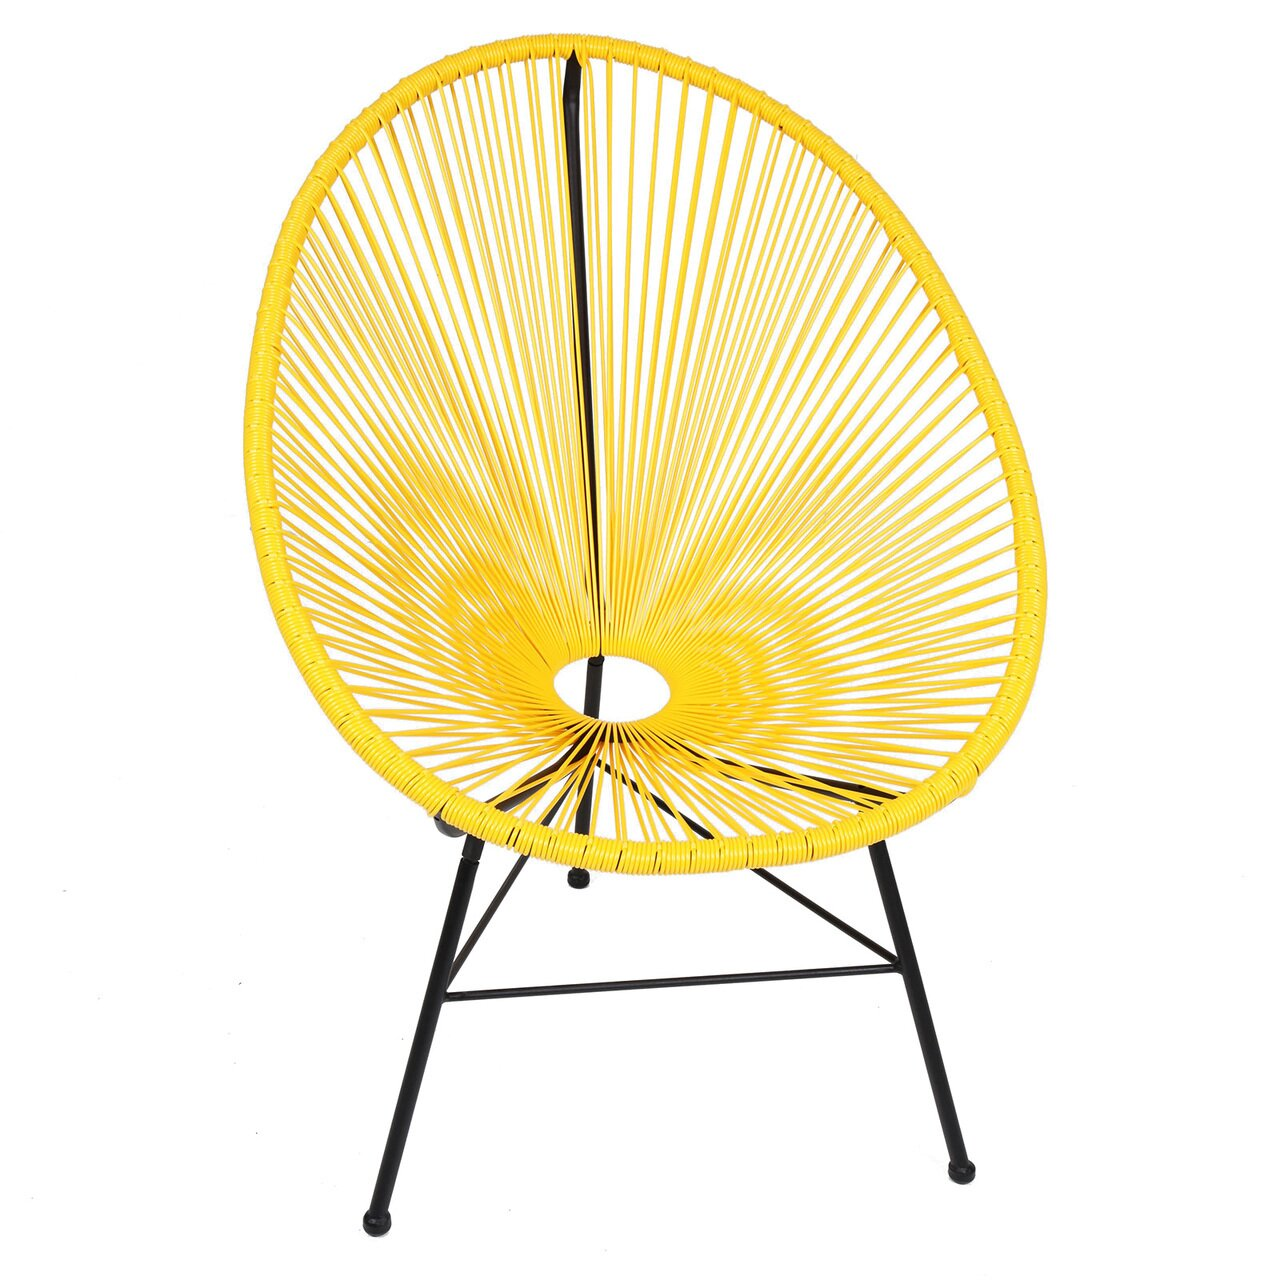 Acapulco chair on patio - Outdoor Patio Furniture Metal Patio Lounge Chairs Polivaz Sku